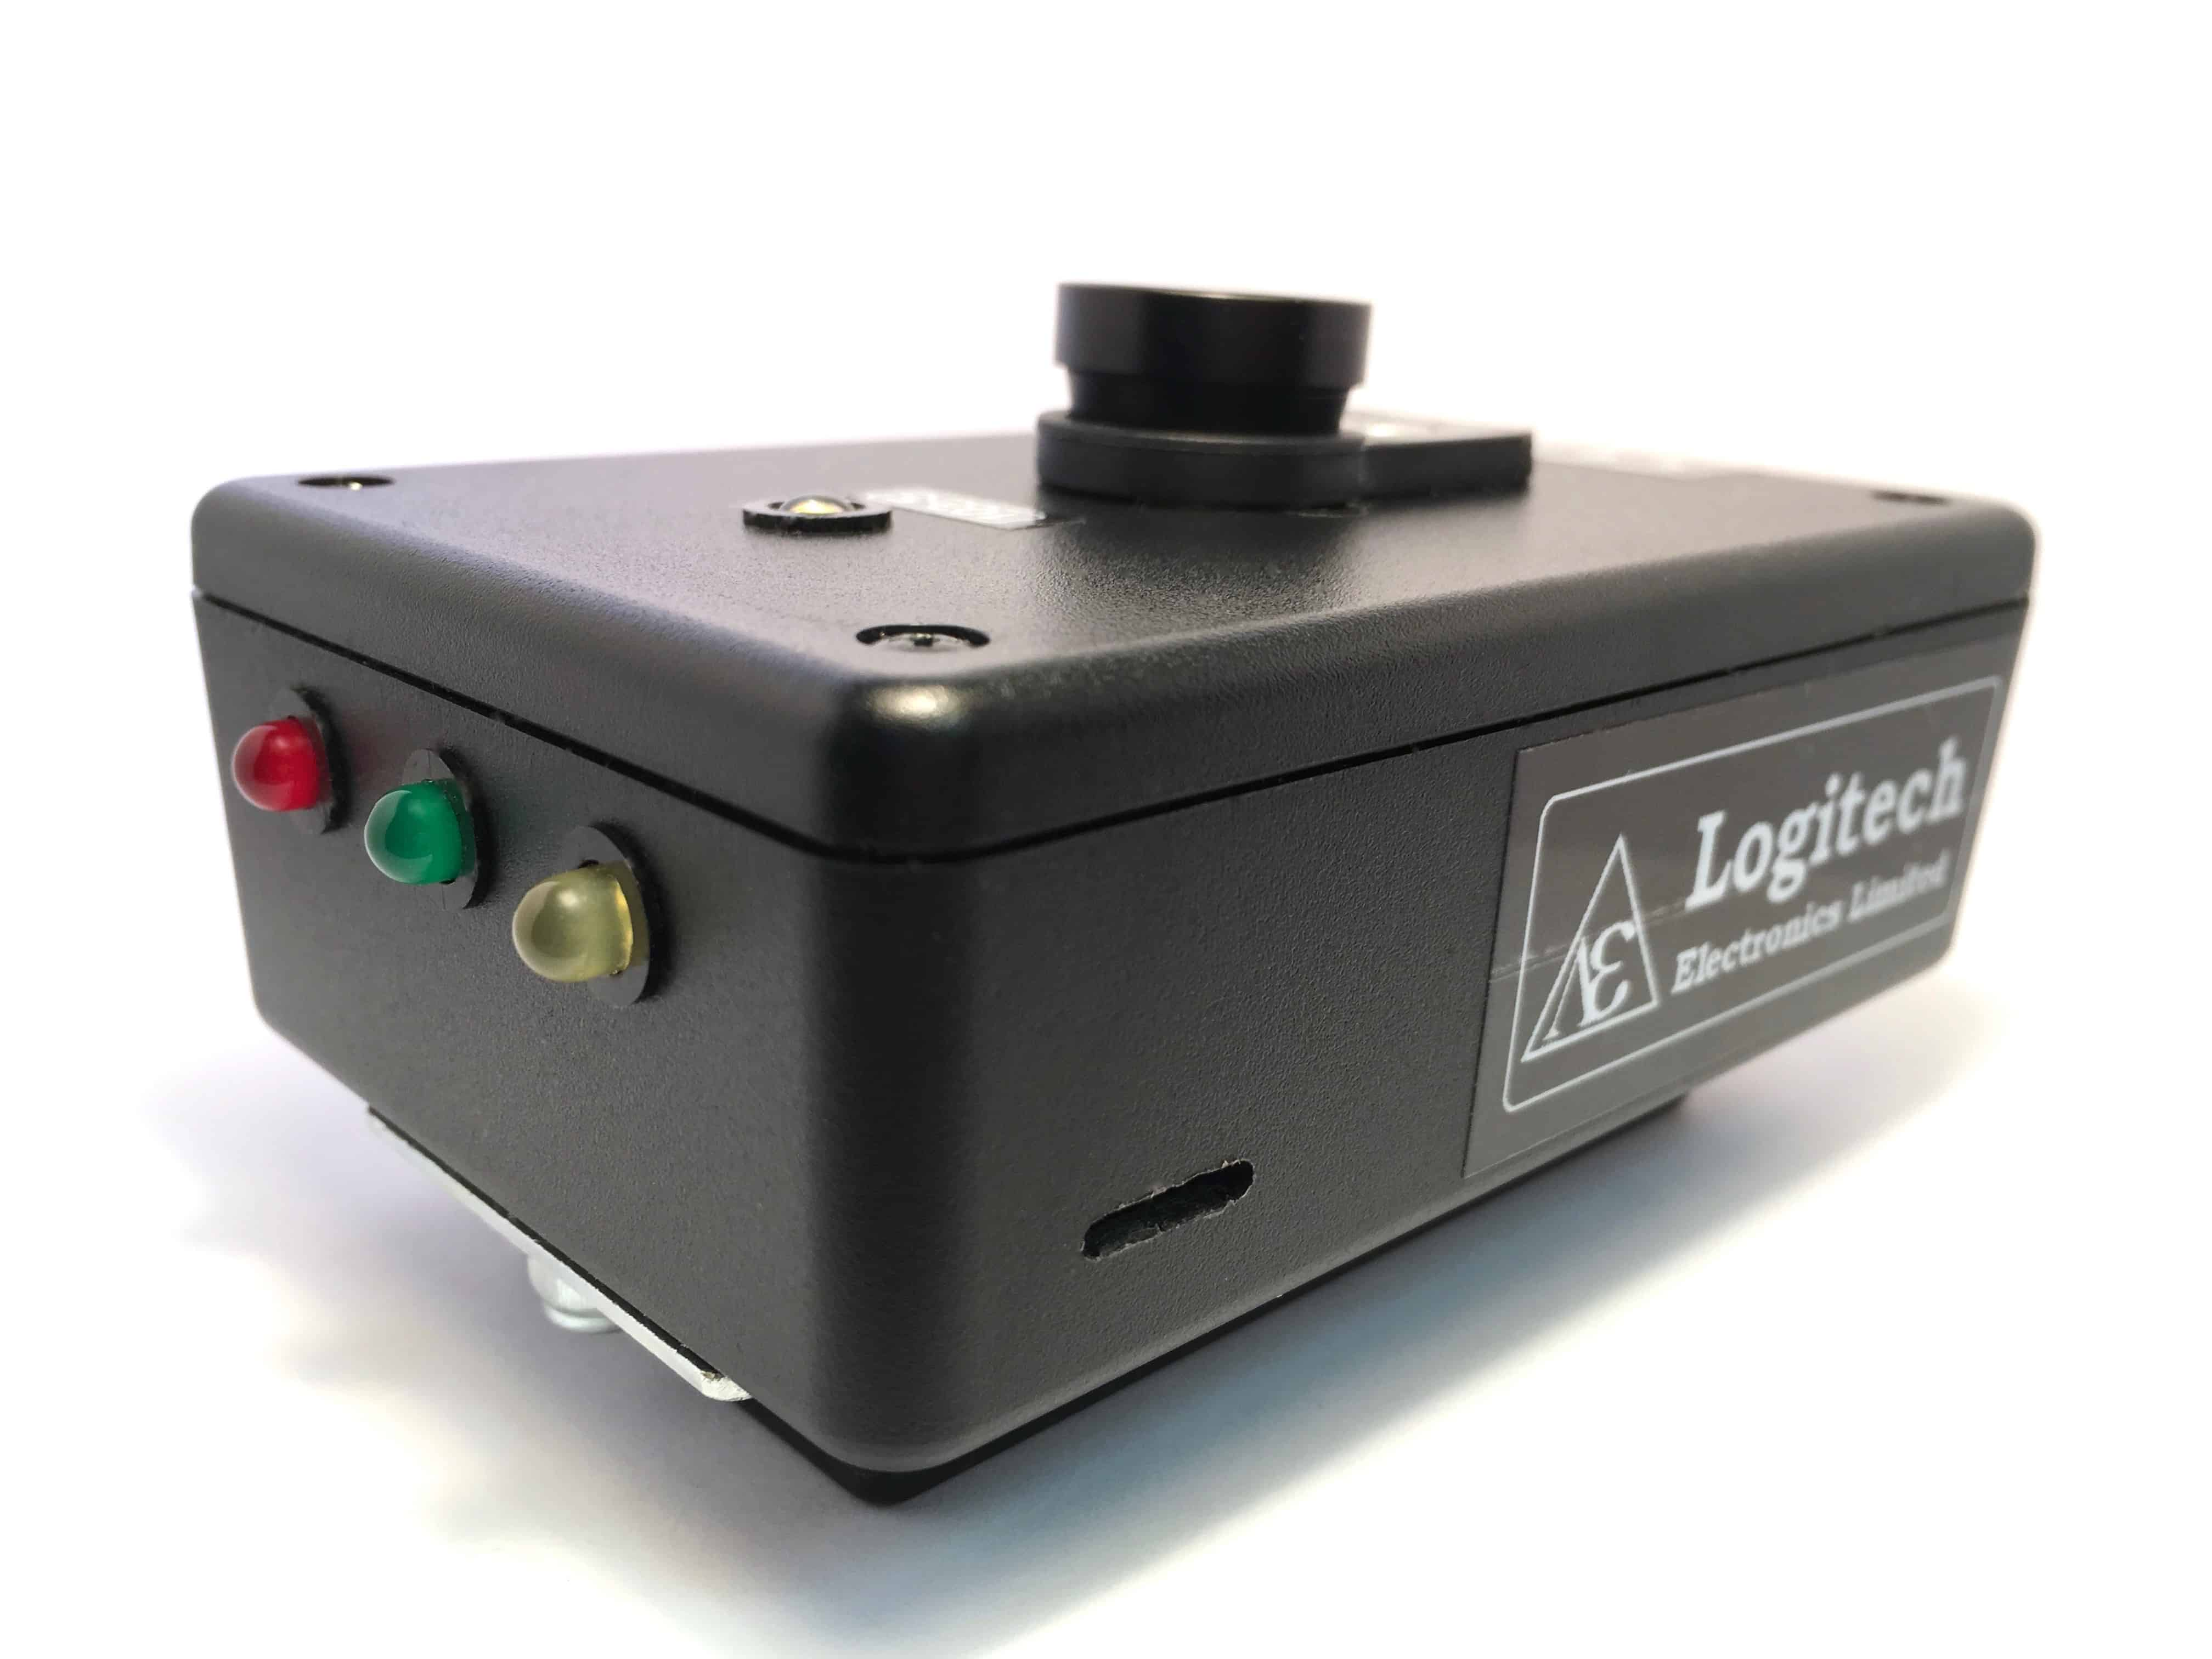 Accipitor Vision System